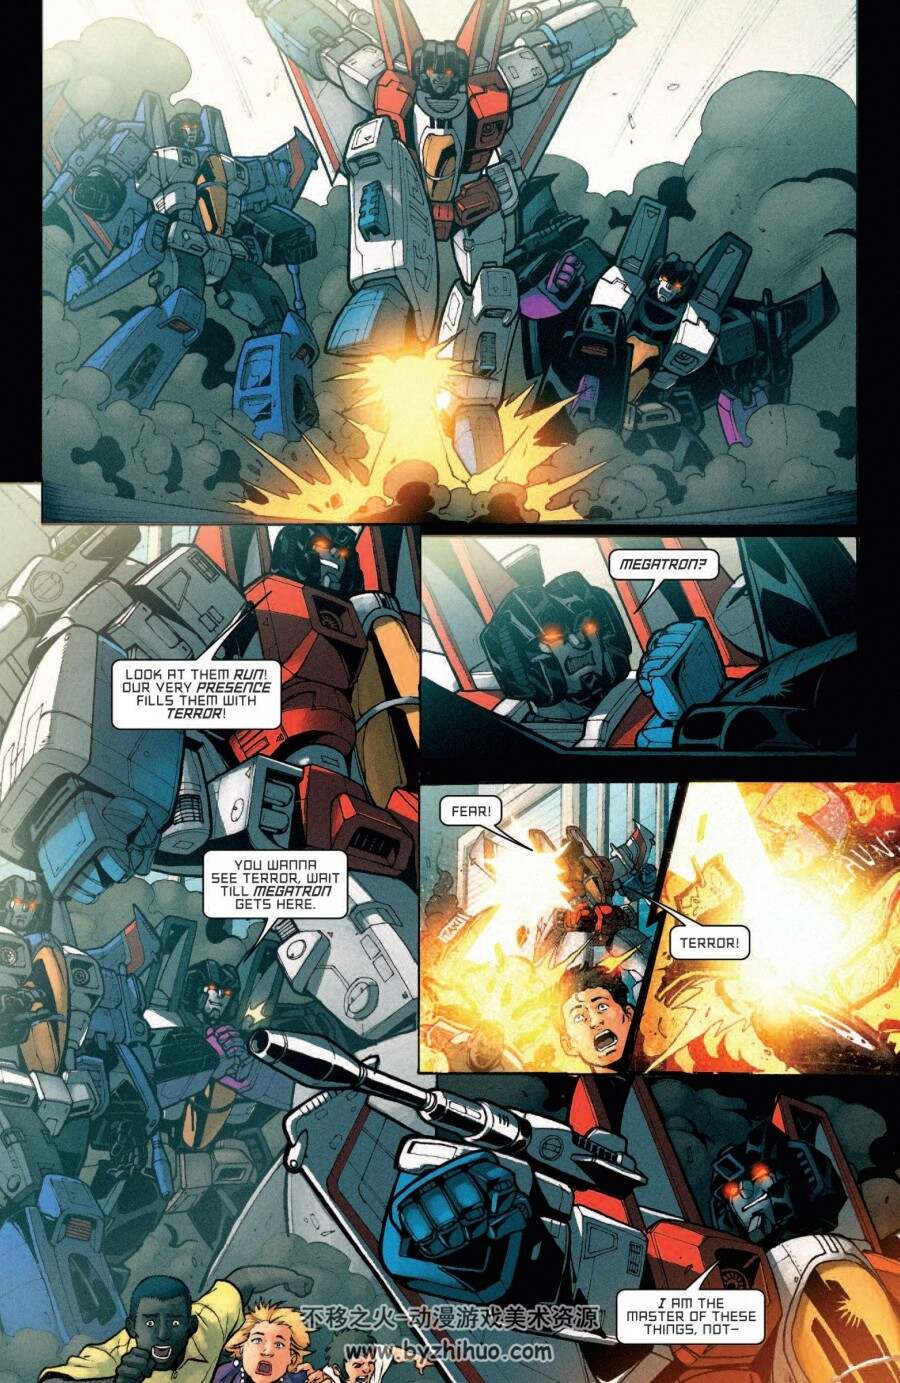 Transformers---All-Hail-Megatron-v1-(2009)-(Digital)-(Kileko-Empire)-013.jpg